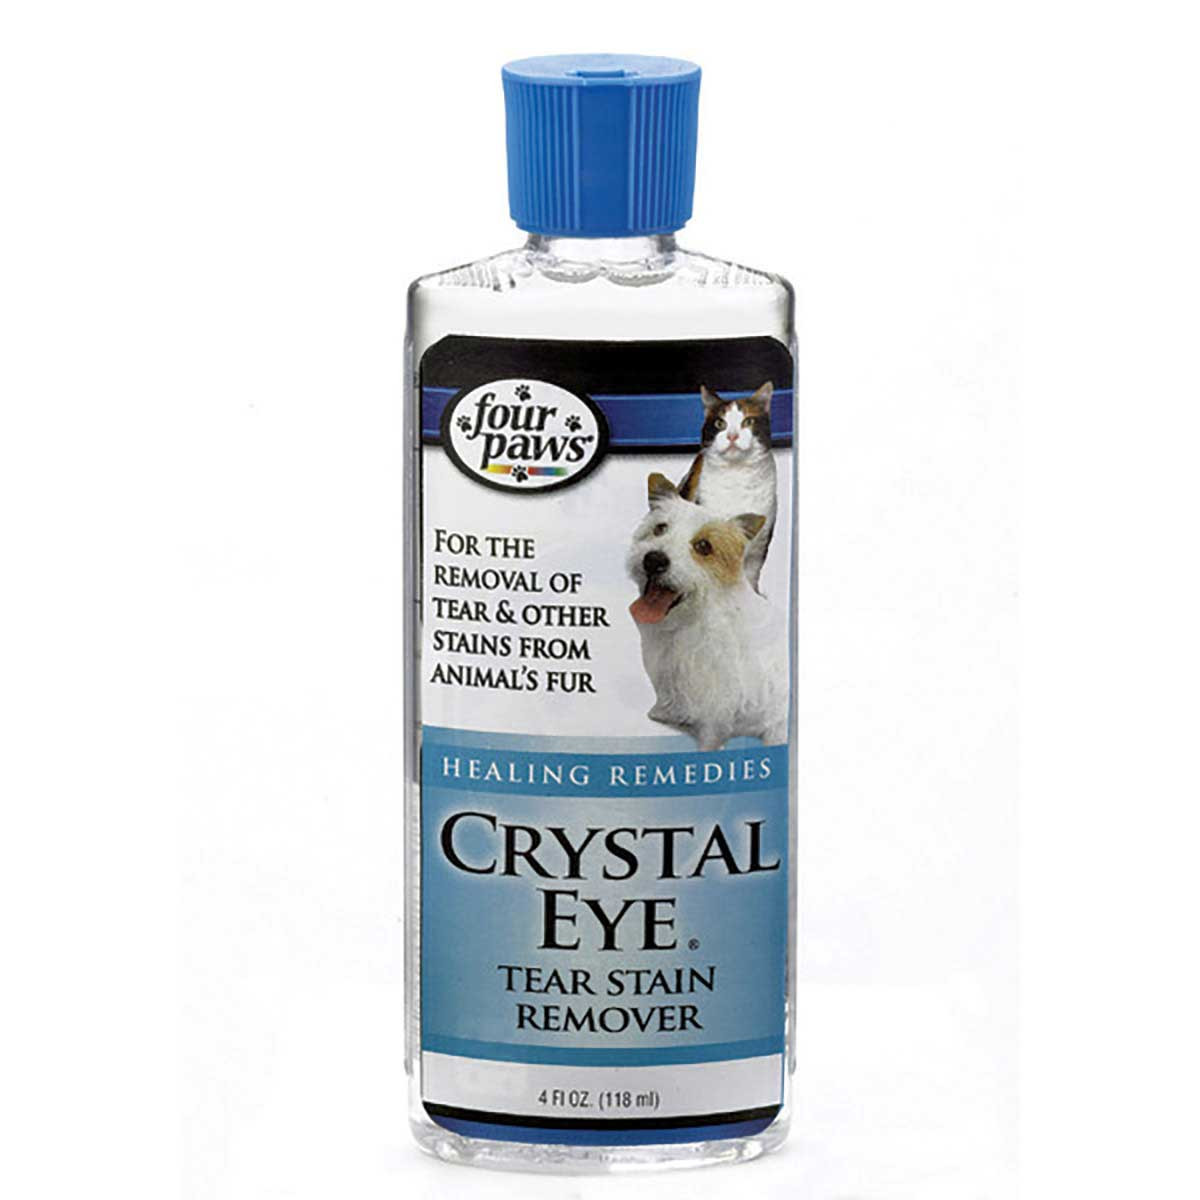 Four Paws Crystal Eye Tear Stain Remover for Dogs